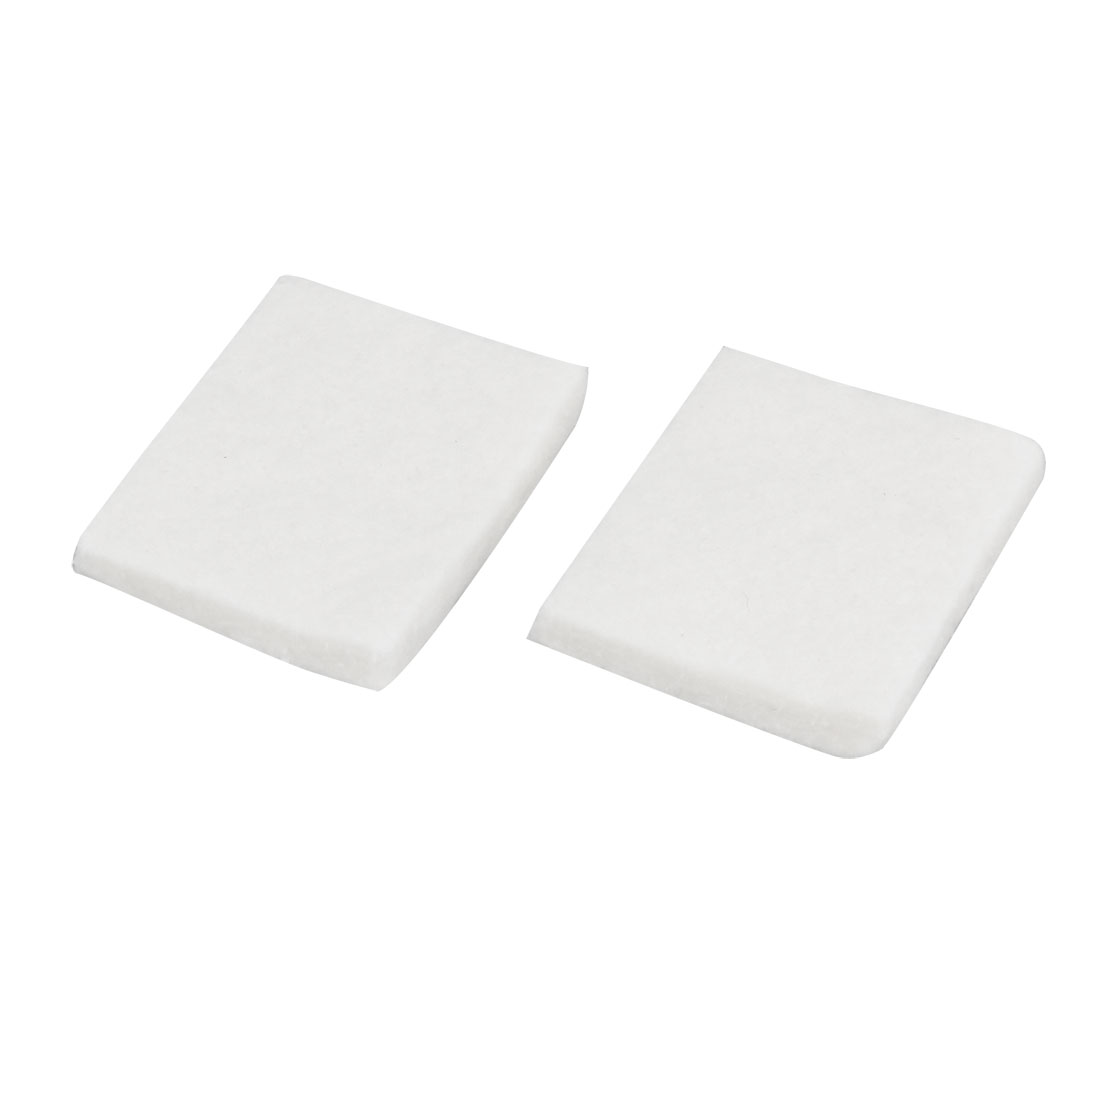 2 Pcs Aquarium Tank Biochemical Water Filter Sponge White 45 x 38 x 7mm